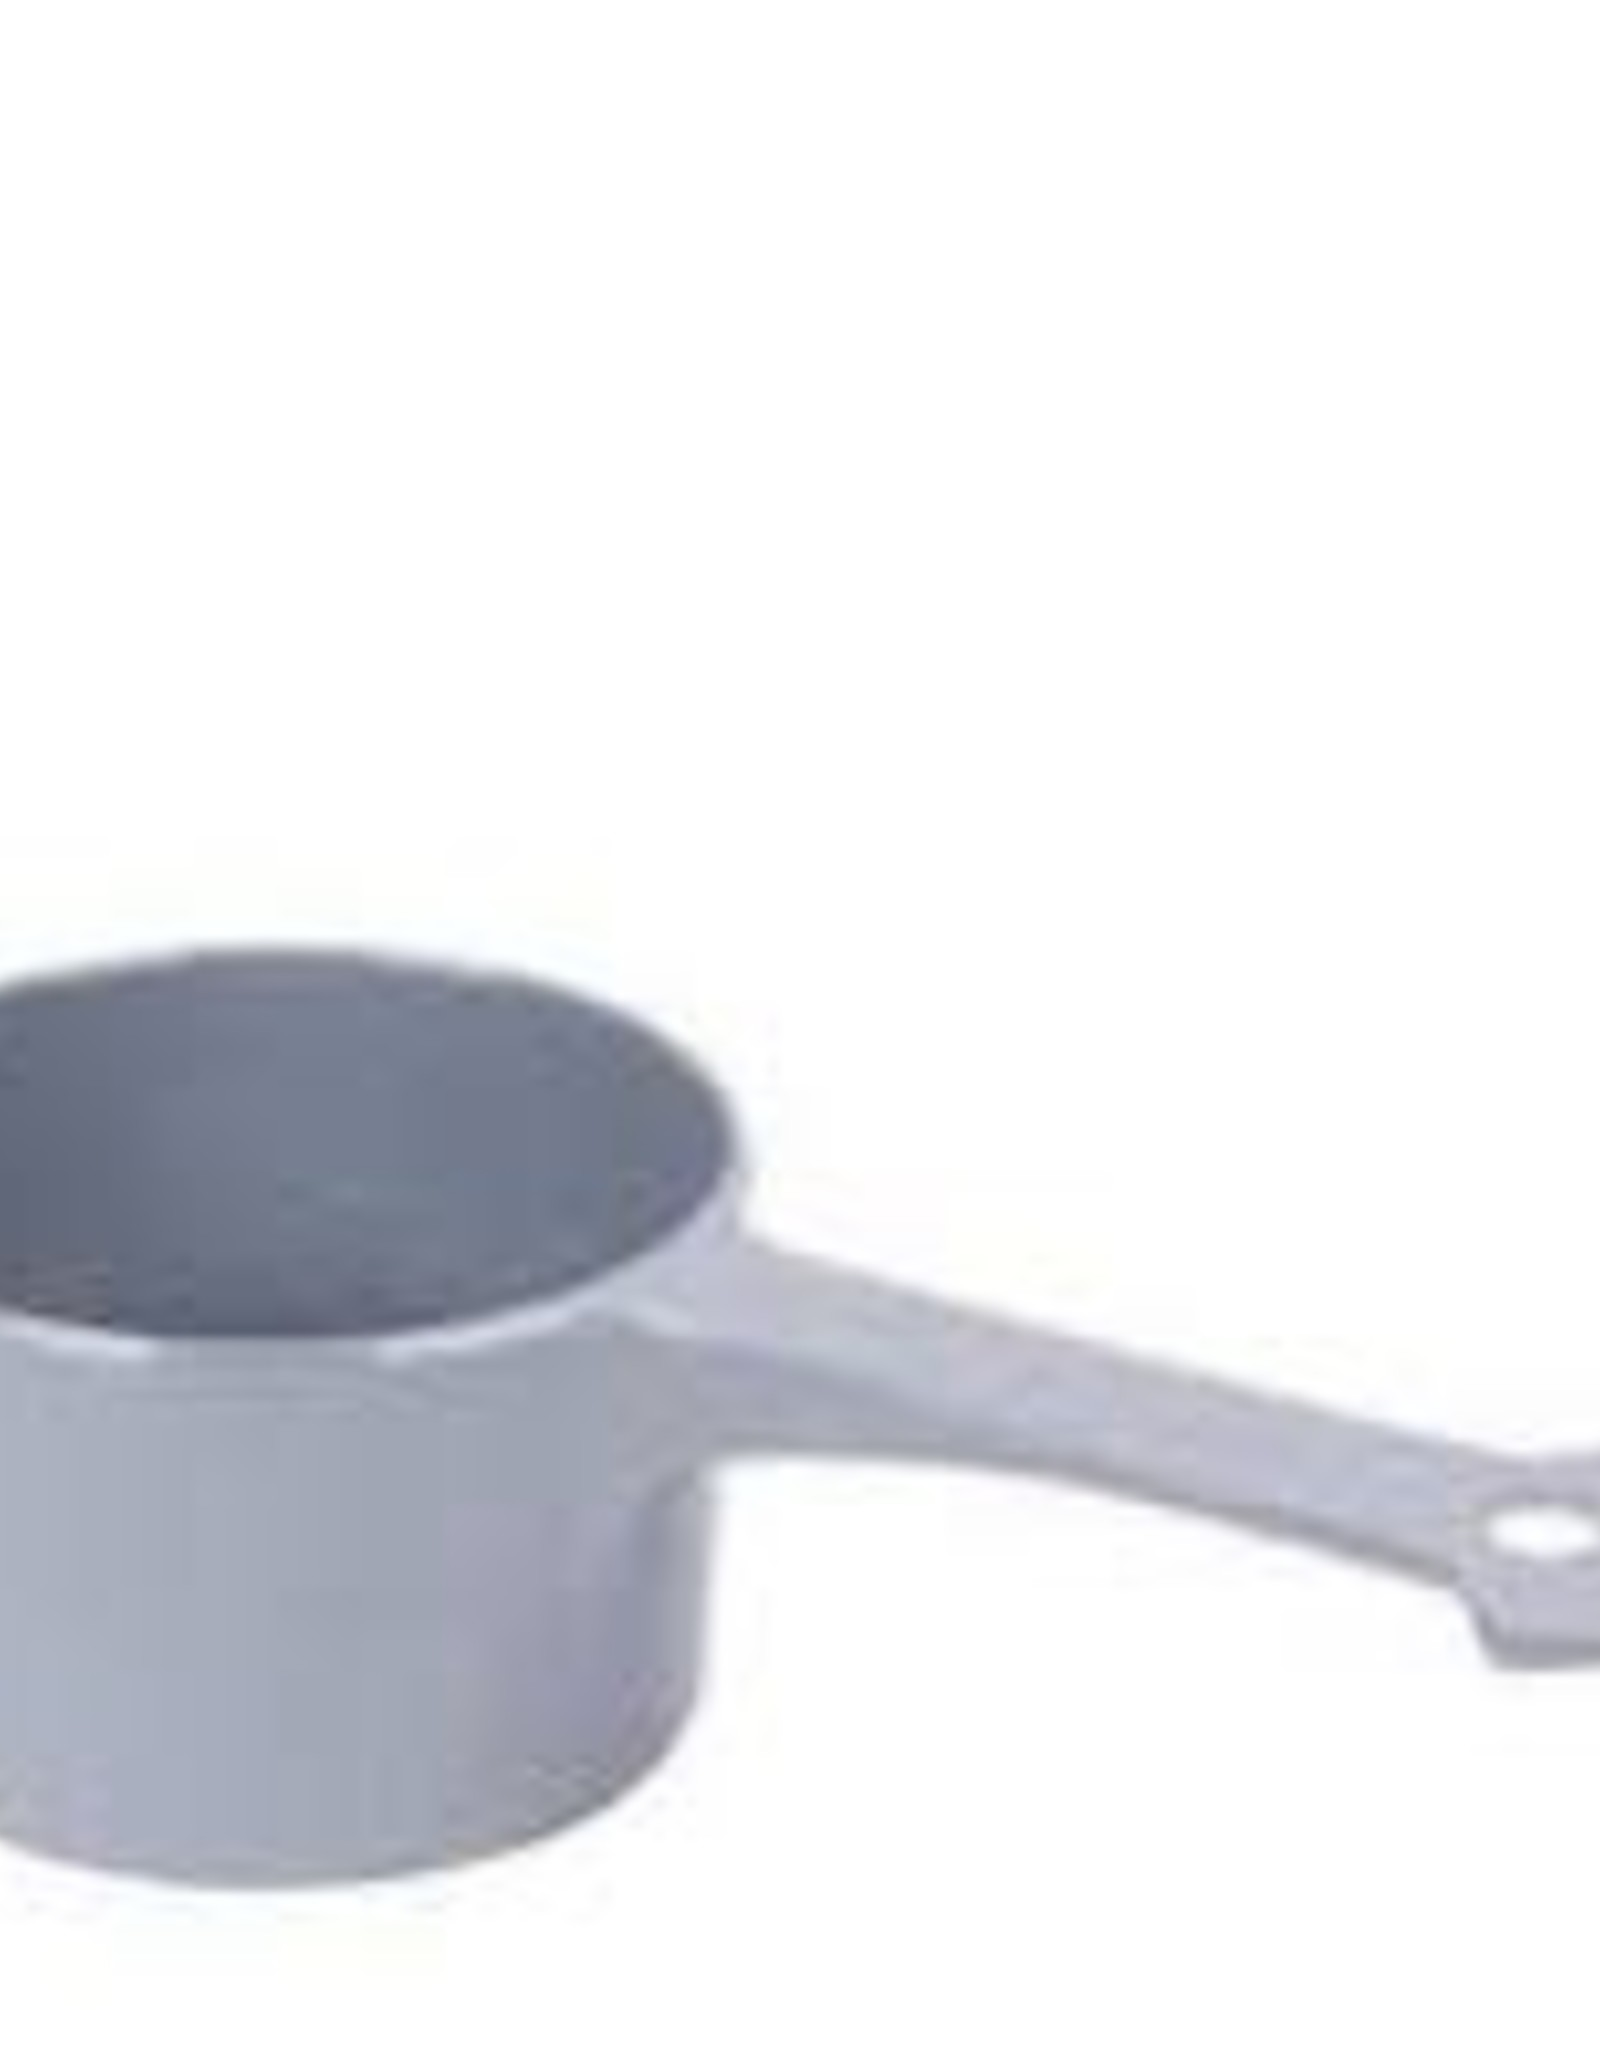 Messy Mutts Messy Mutts Dog Food Scoop 1 Cup